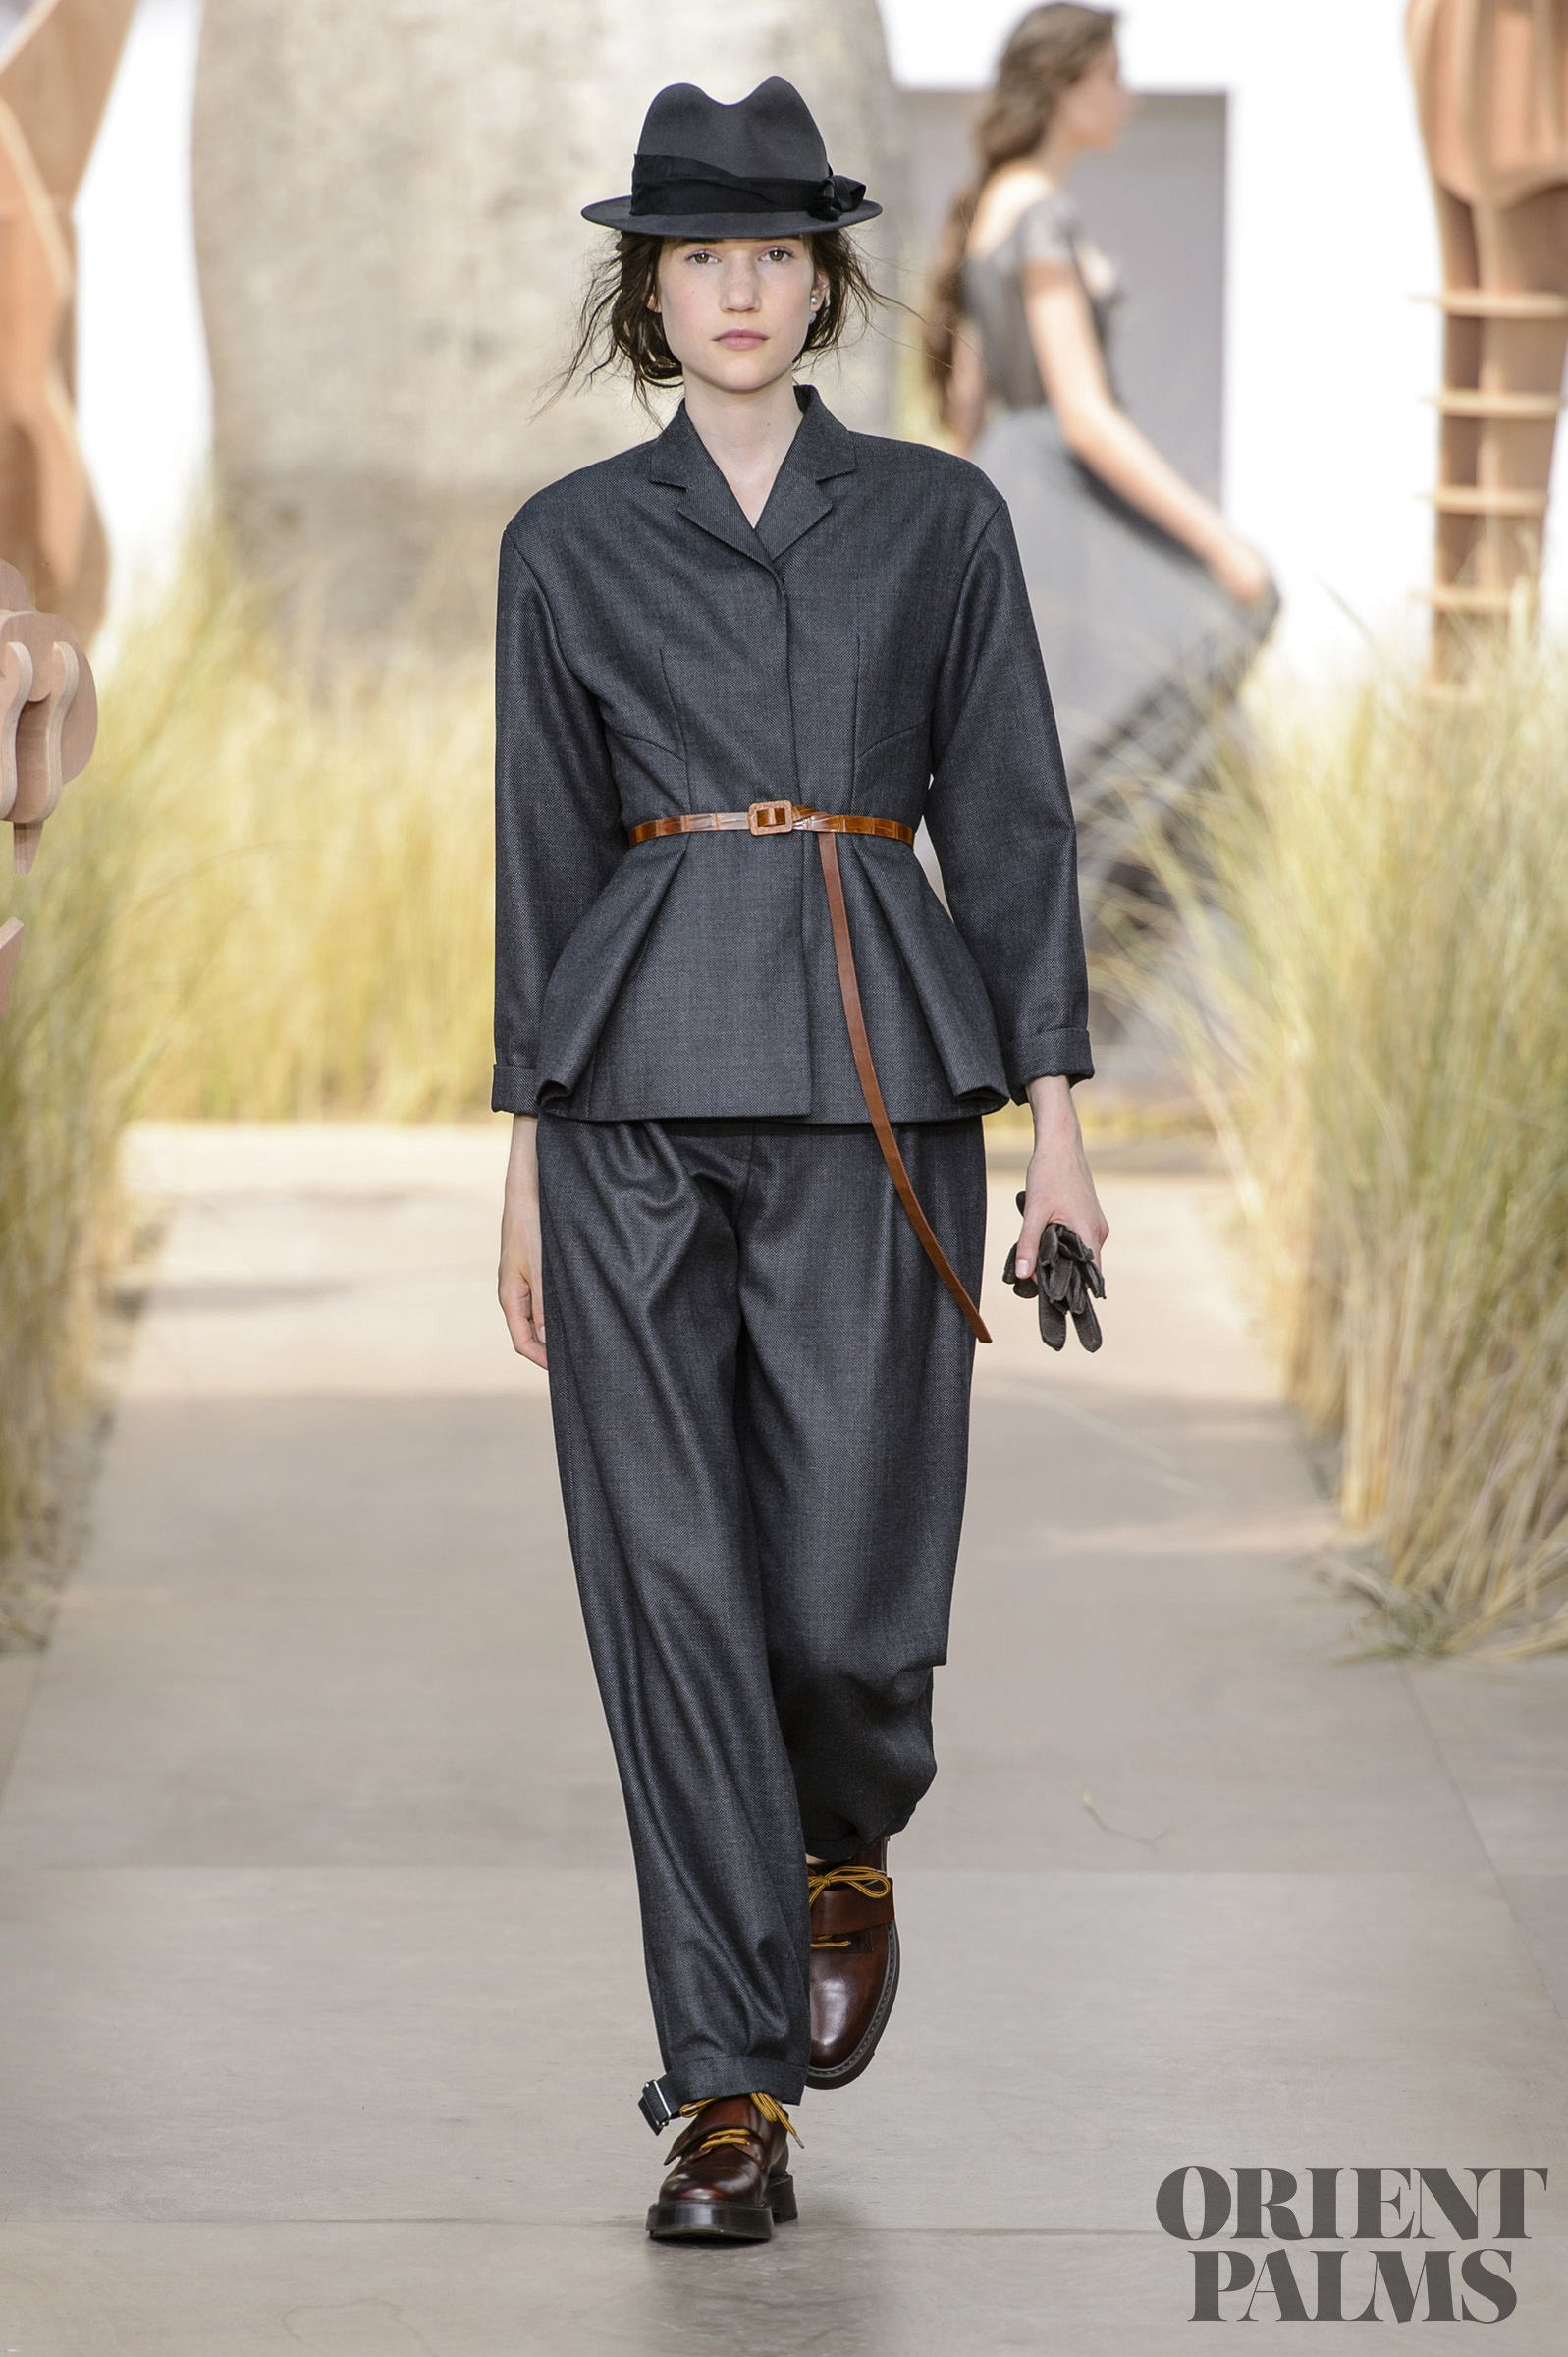 Christian dior herbst winter 2017 2018 couture for Christian herbst